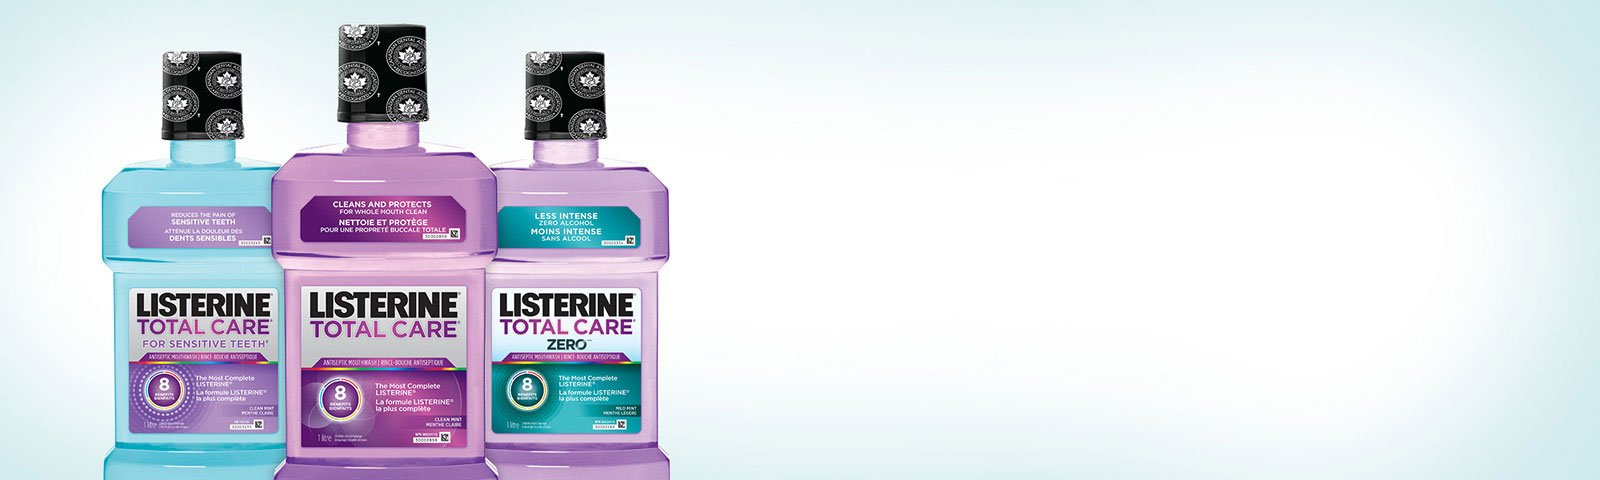 Three Listerine mouthwash bottles